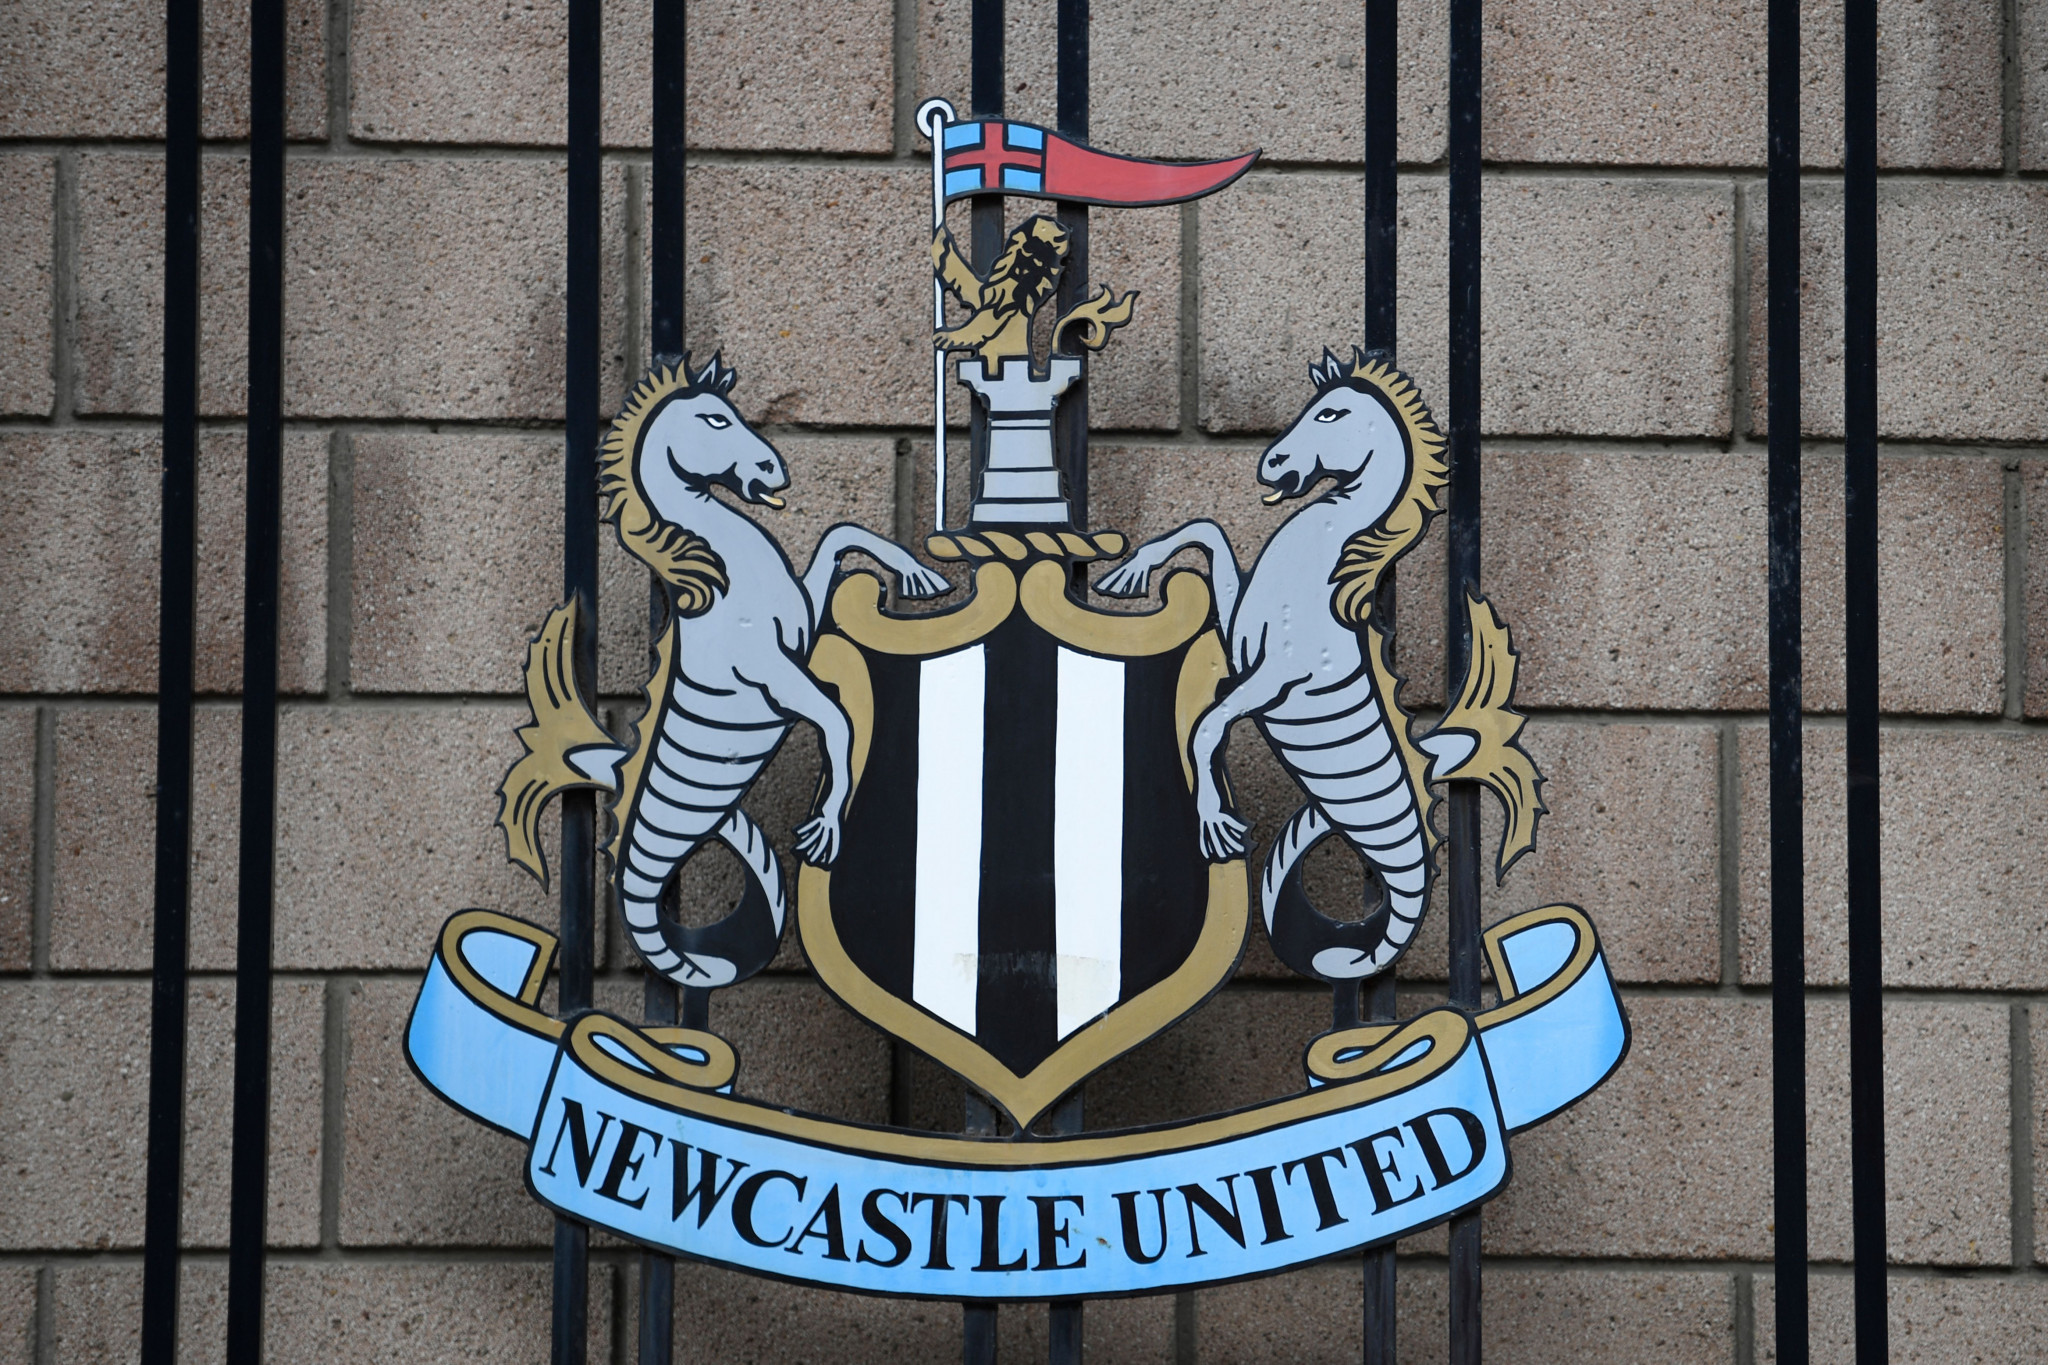 Increased Saudi-Qatari relations pivotal to the PIF takeover of Newcastle United